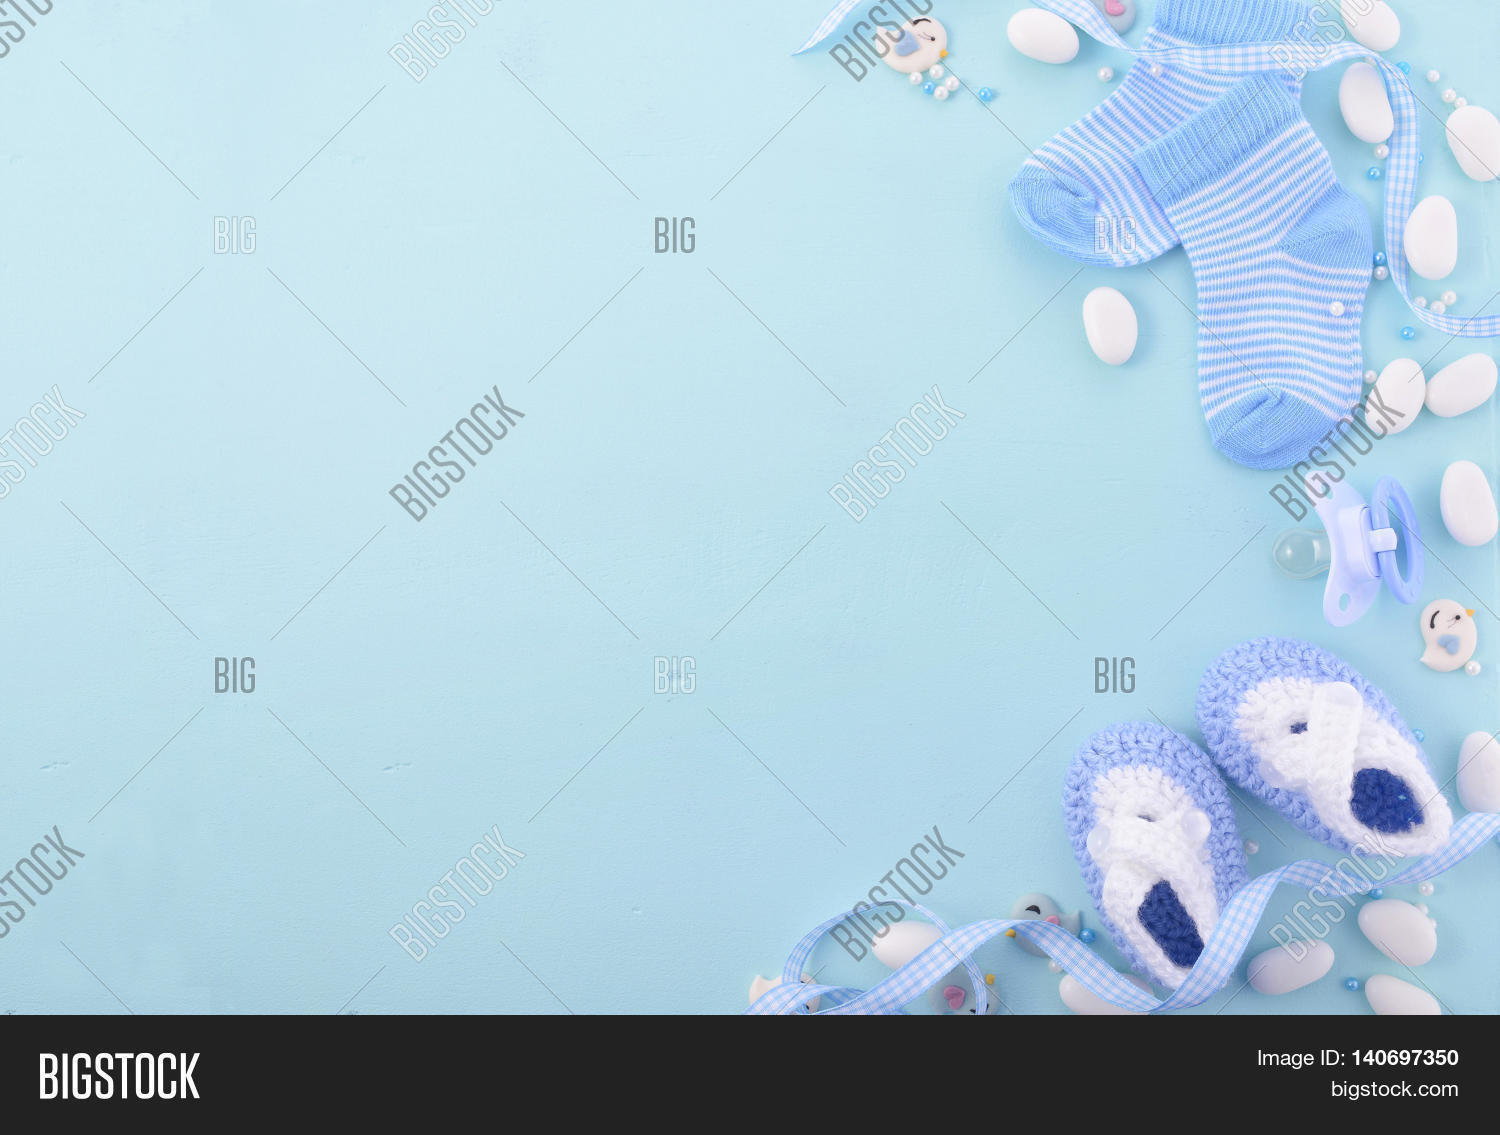 Blue Baby Shower Image Photo Free Trial Bigstock